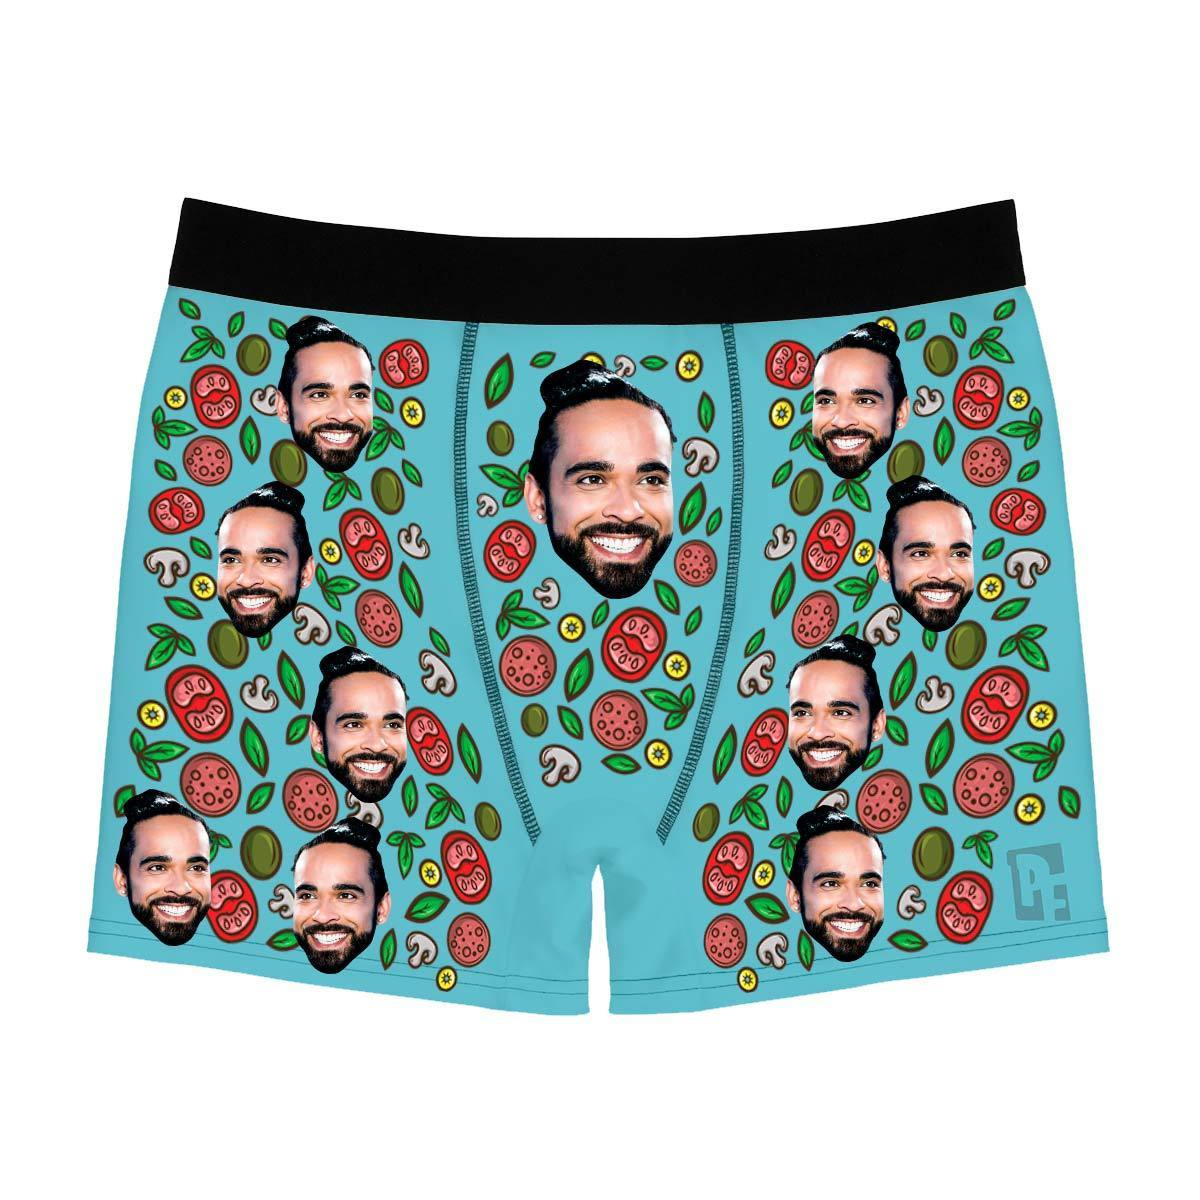 Blue Pizza men's boxer briefs personalized with photo printed on them